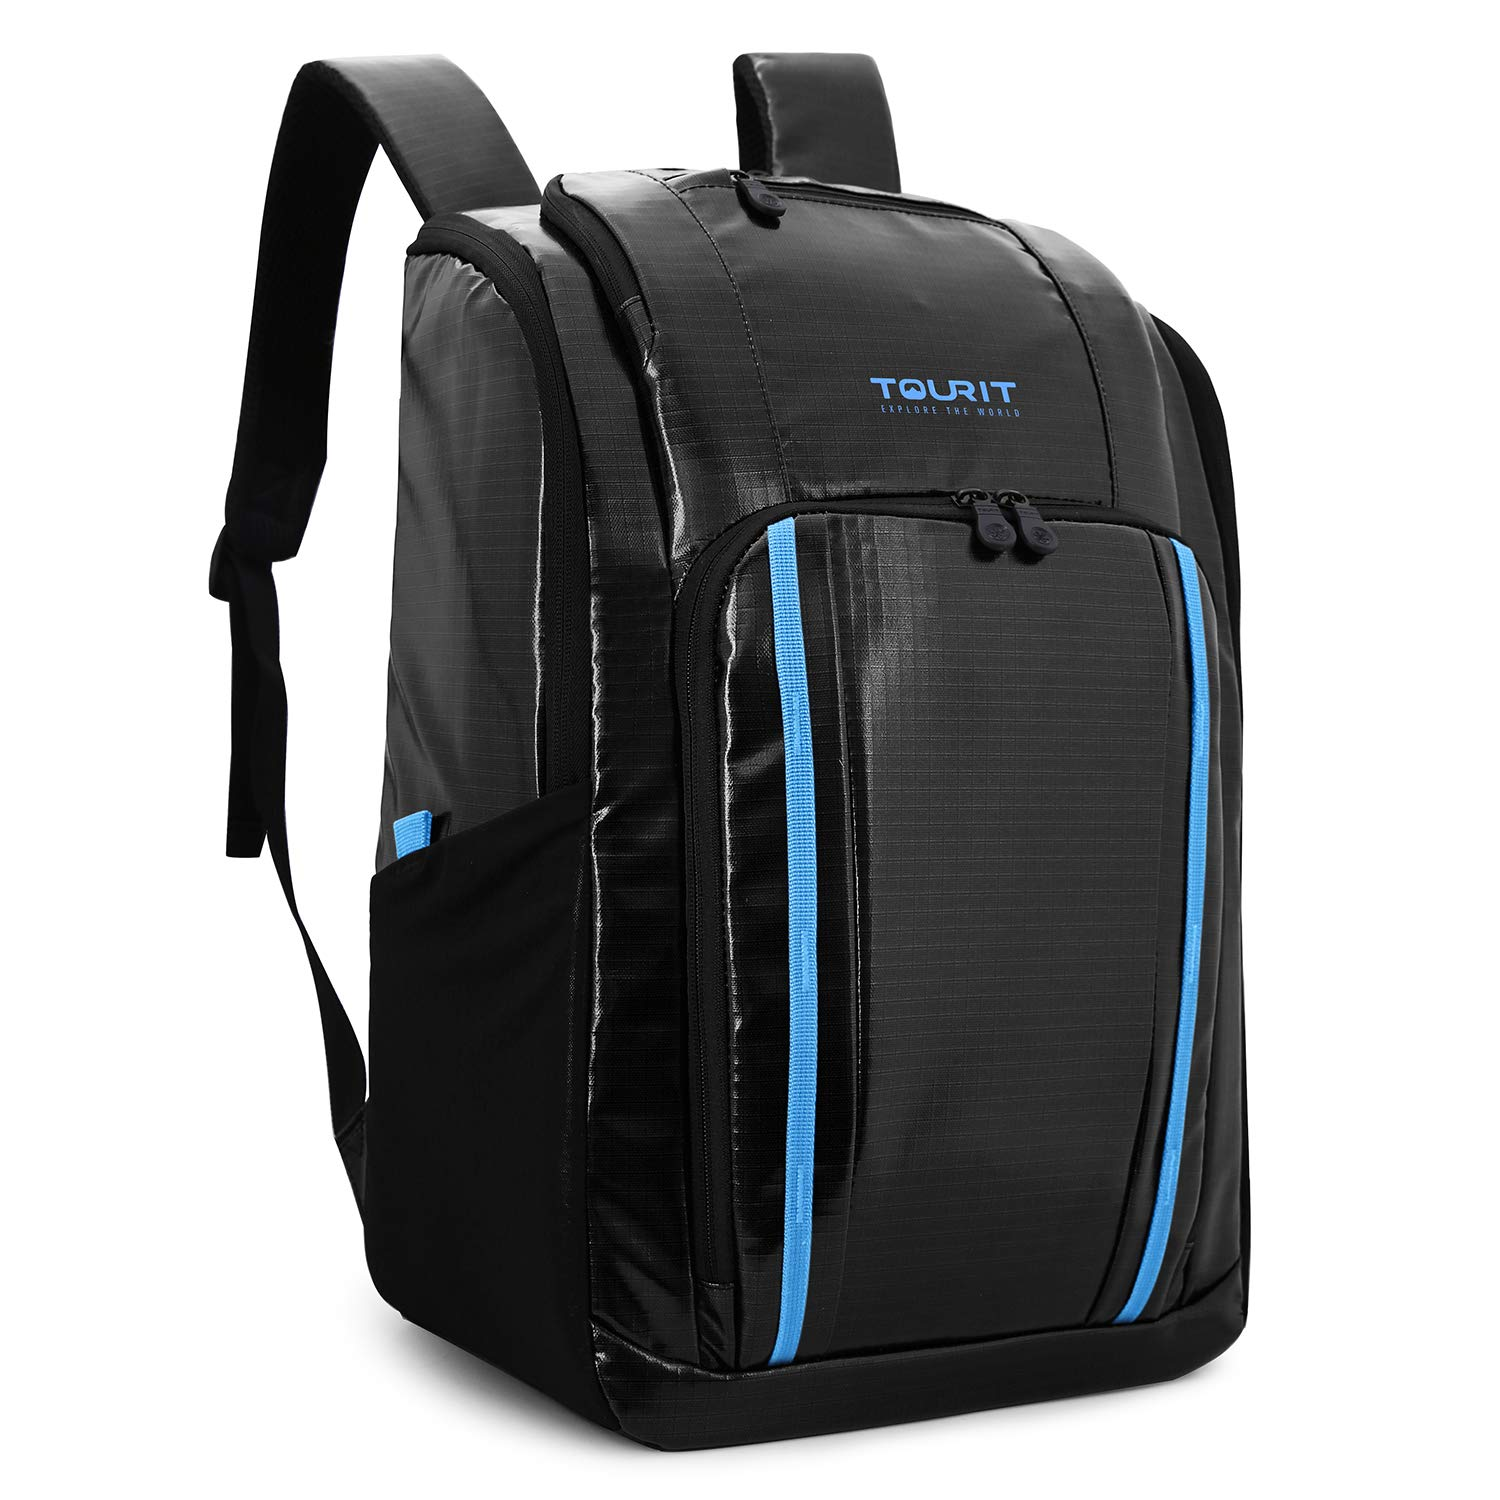 TOURIT Cooler Backpack Insulated Leakproof Backpack Cooler Soft Cooler with Waterproof TPU Material for Lunch, Picnic, Hiking, Camping, Beach, Park or Day Trip, 32 Cans, Black